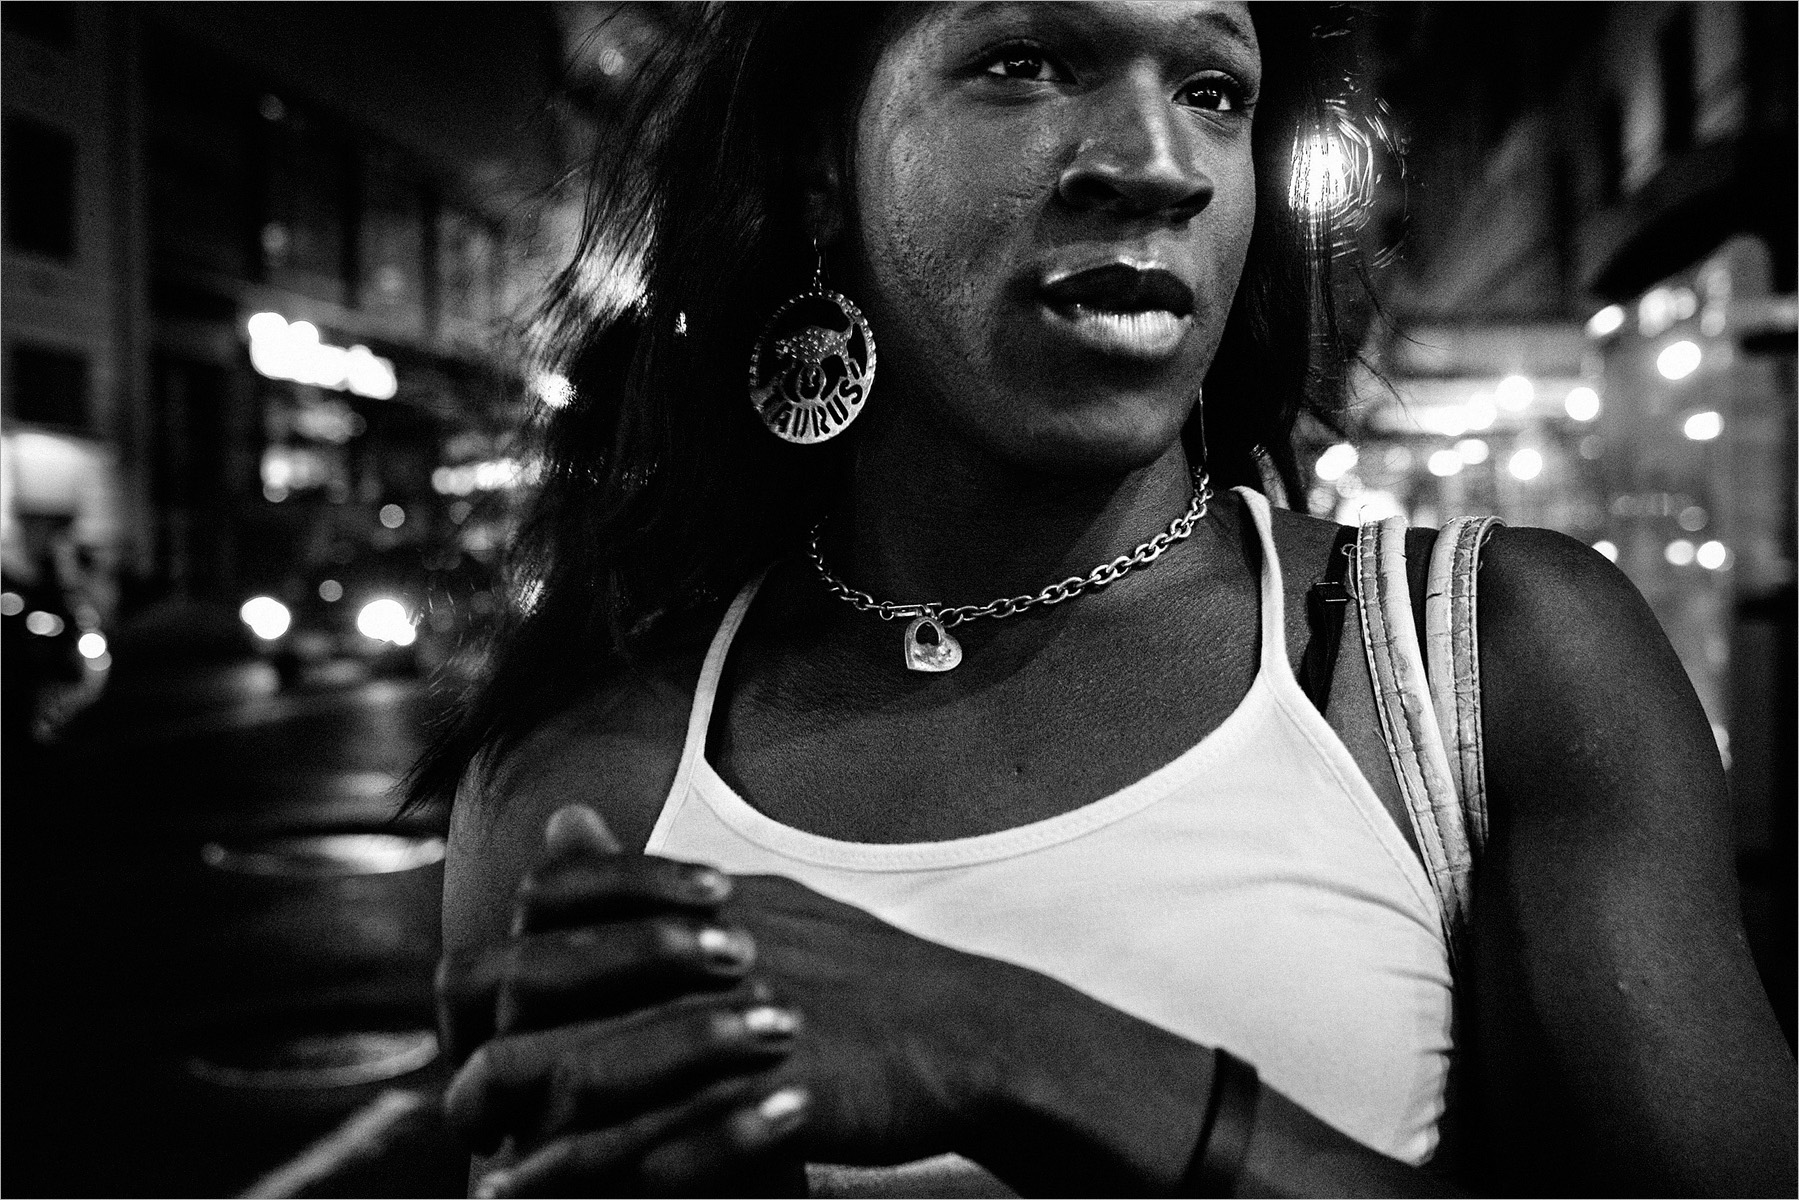 INVISIBLE: The Shelter, The Street is a documentary series that describes the impact of homelessness on LGBTQ youth.   Photograph by Samantha Box  2005 - 2012 © Samantha Box